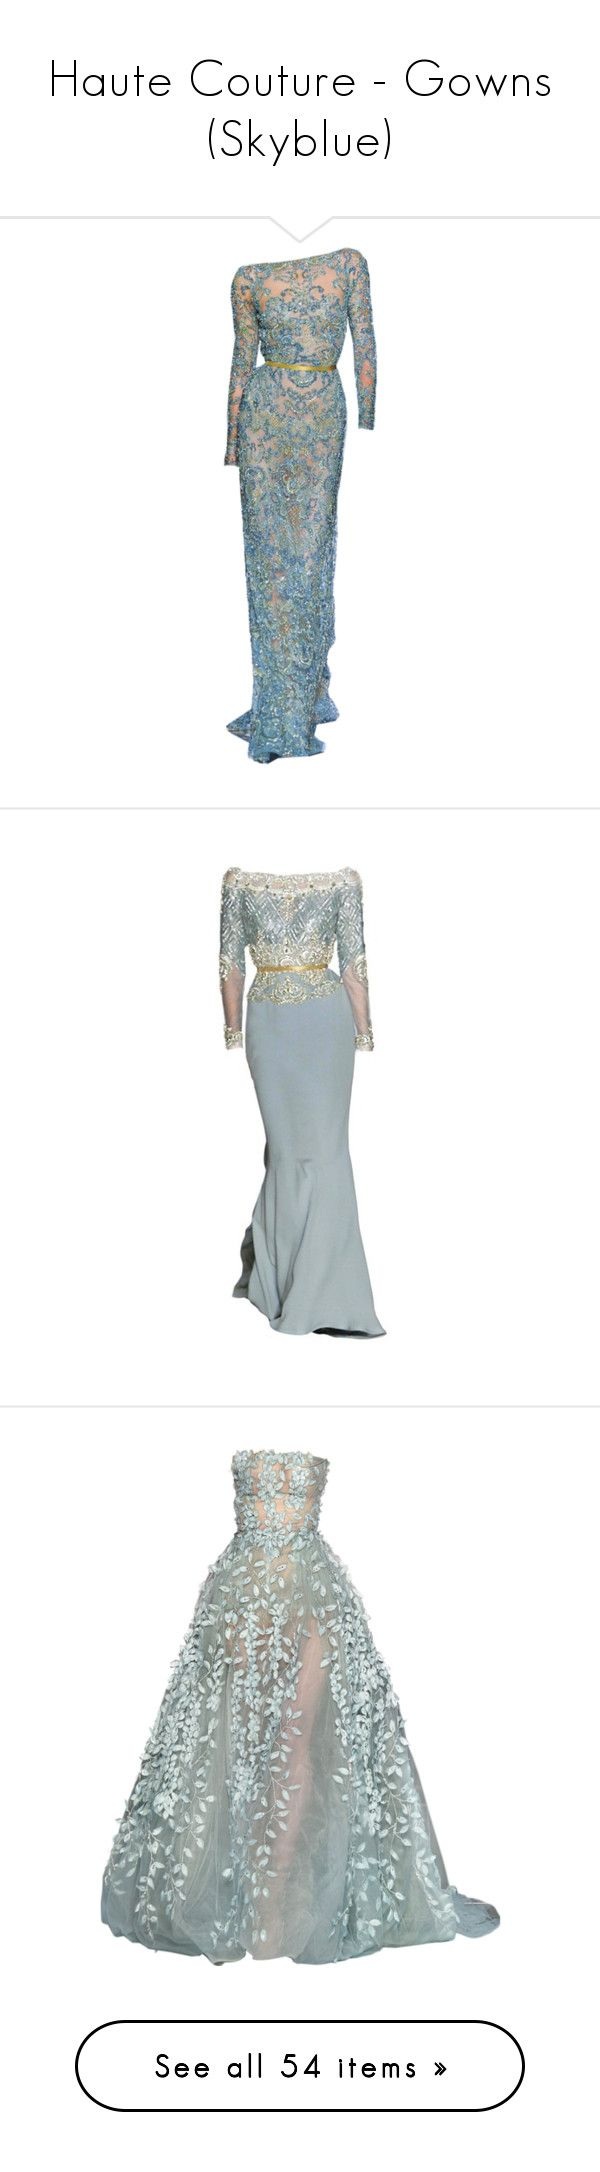 """""""Haute Couture - Gowns (Skyblue)"""" by giovanna1995 ❤ liked on Polyvore featuring Blue, GREEN, mint, gown, hautecouture, dresses, gowns, long dresses, elie saab and vestidos"""